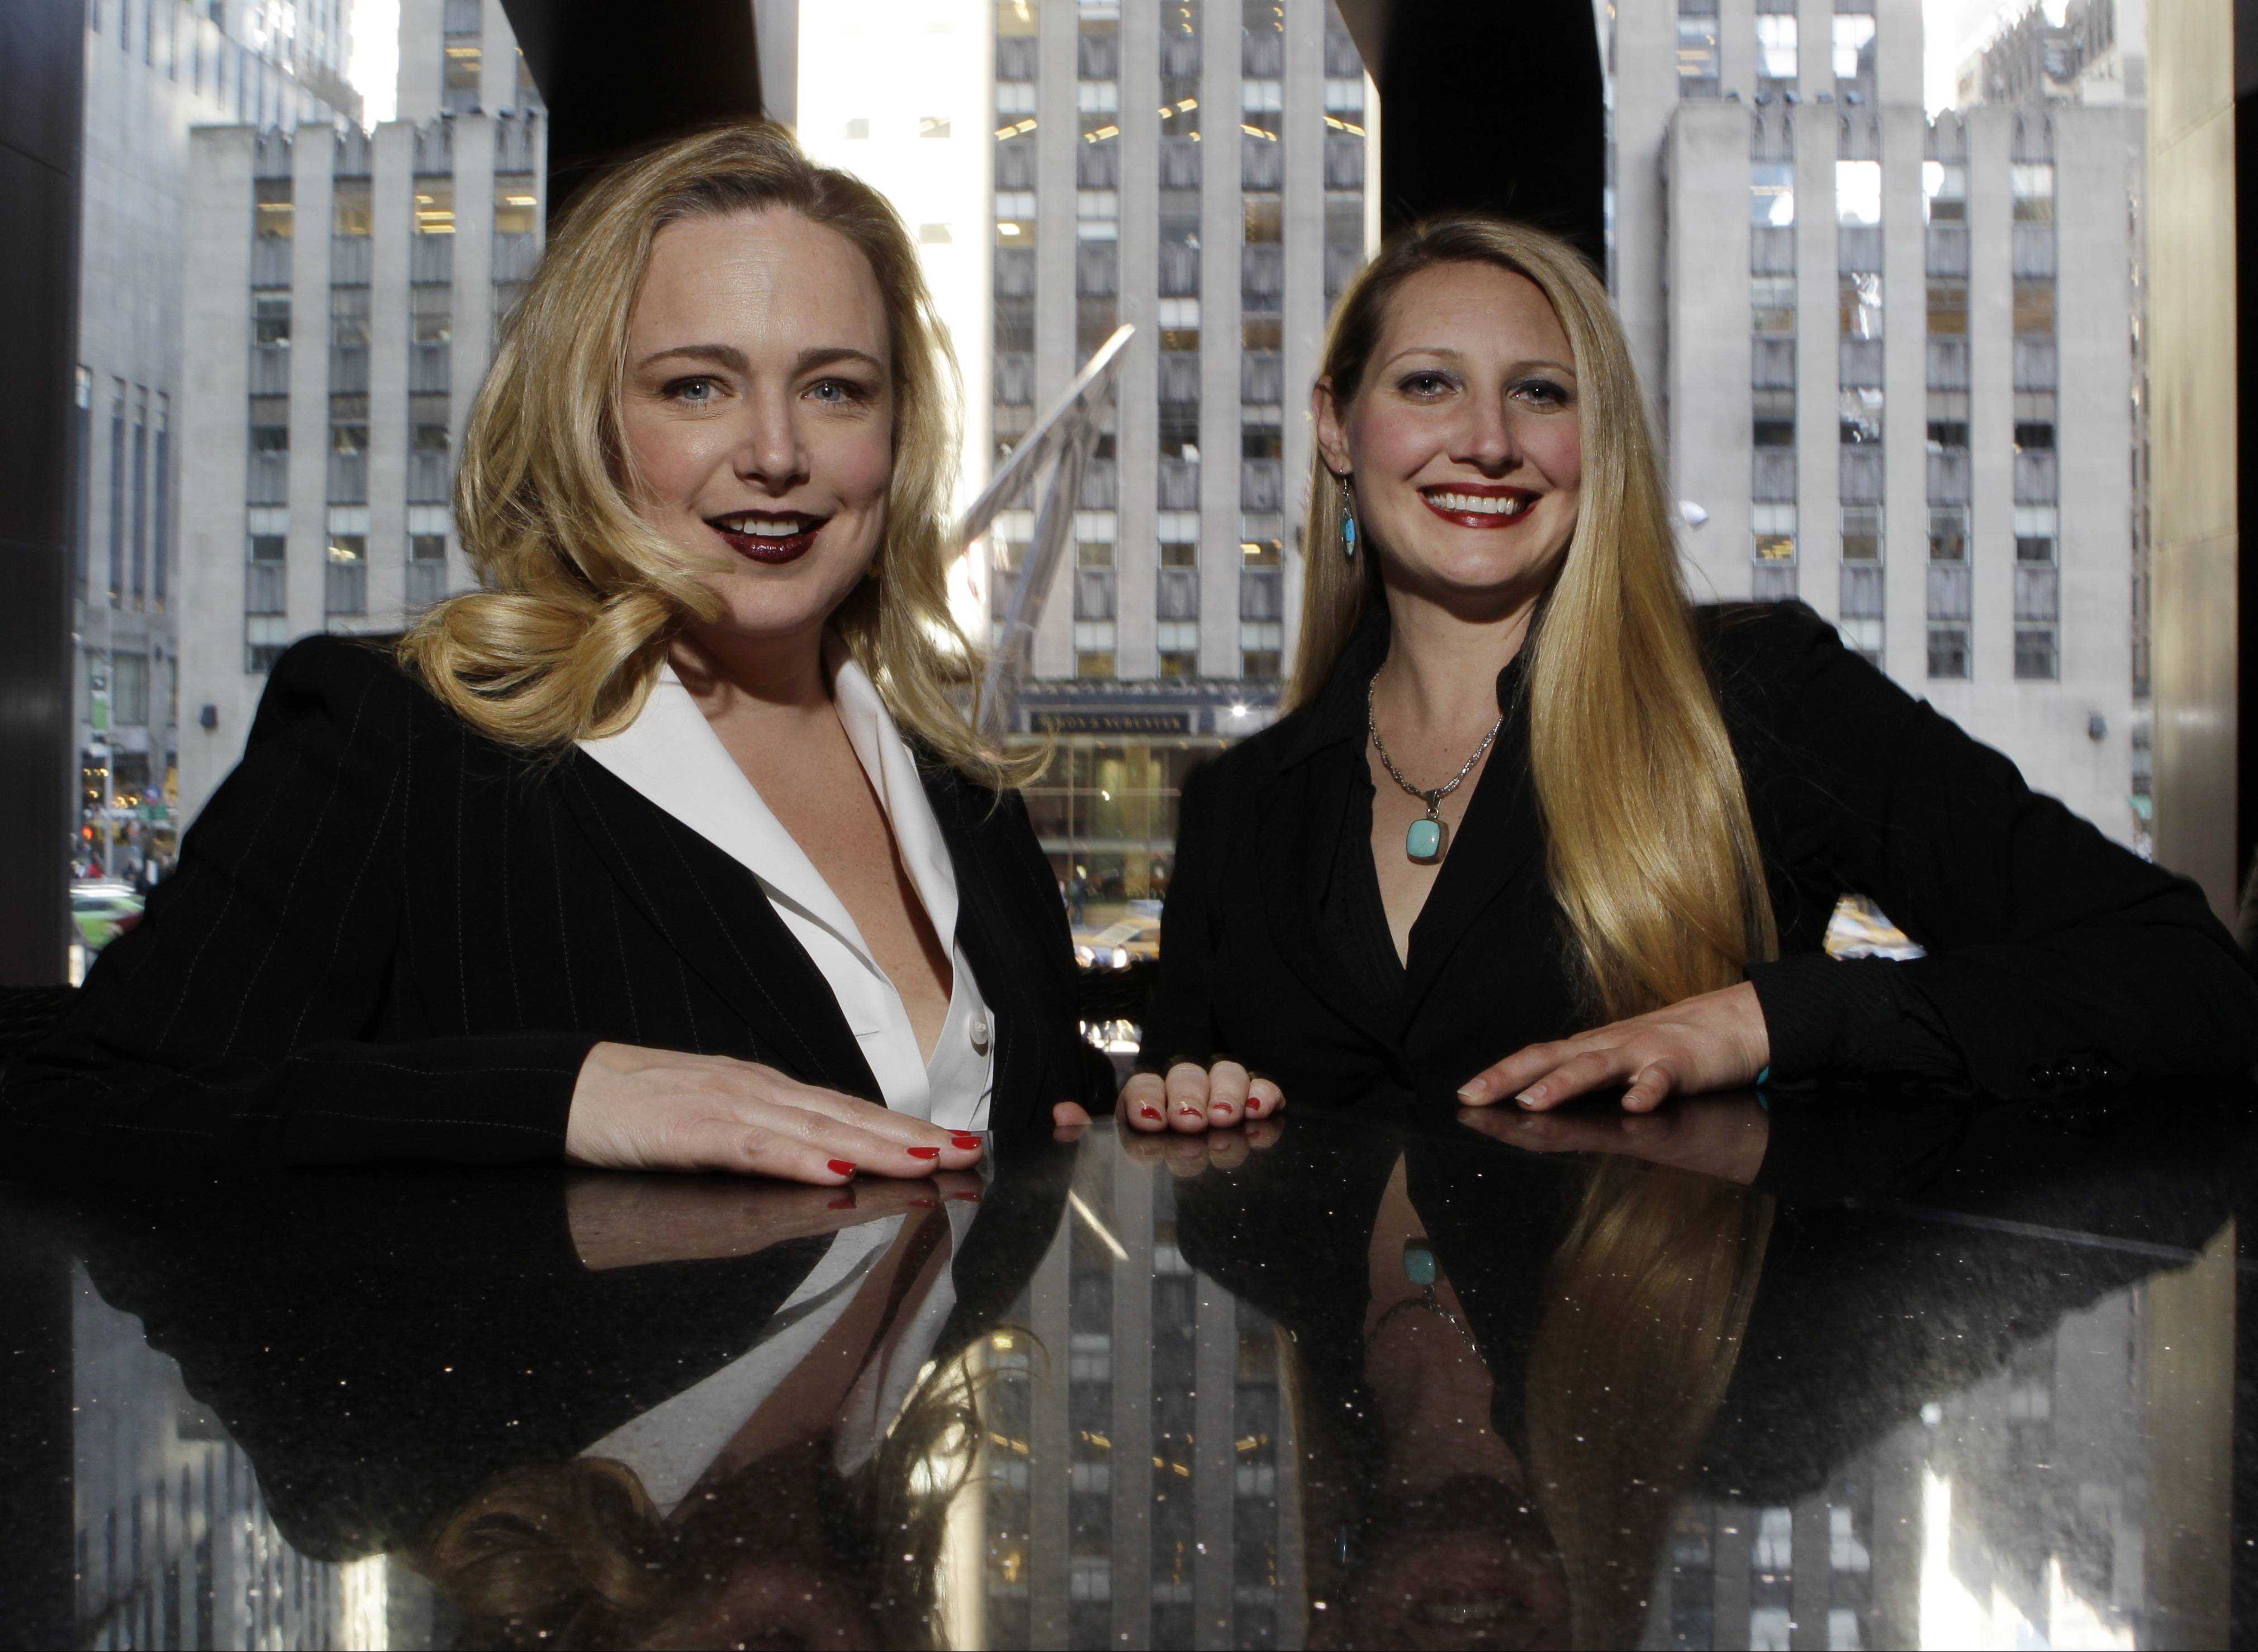 Crystl Faye Horton-Friedman, right, and Kristin Beckler, left, pose for a photo at Del Frisco's in New York. Both women work as sommeliers at the restaurant. More women are moving up the wine ranks, said Dorothy Cann Hamilton, founder and CEO of the International Culinary Center.